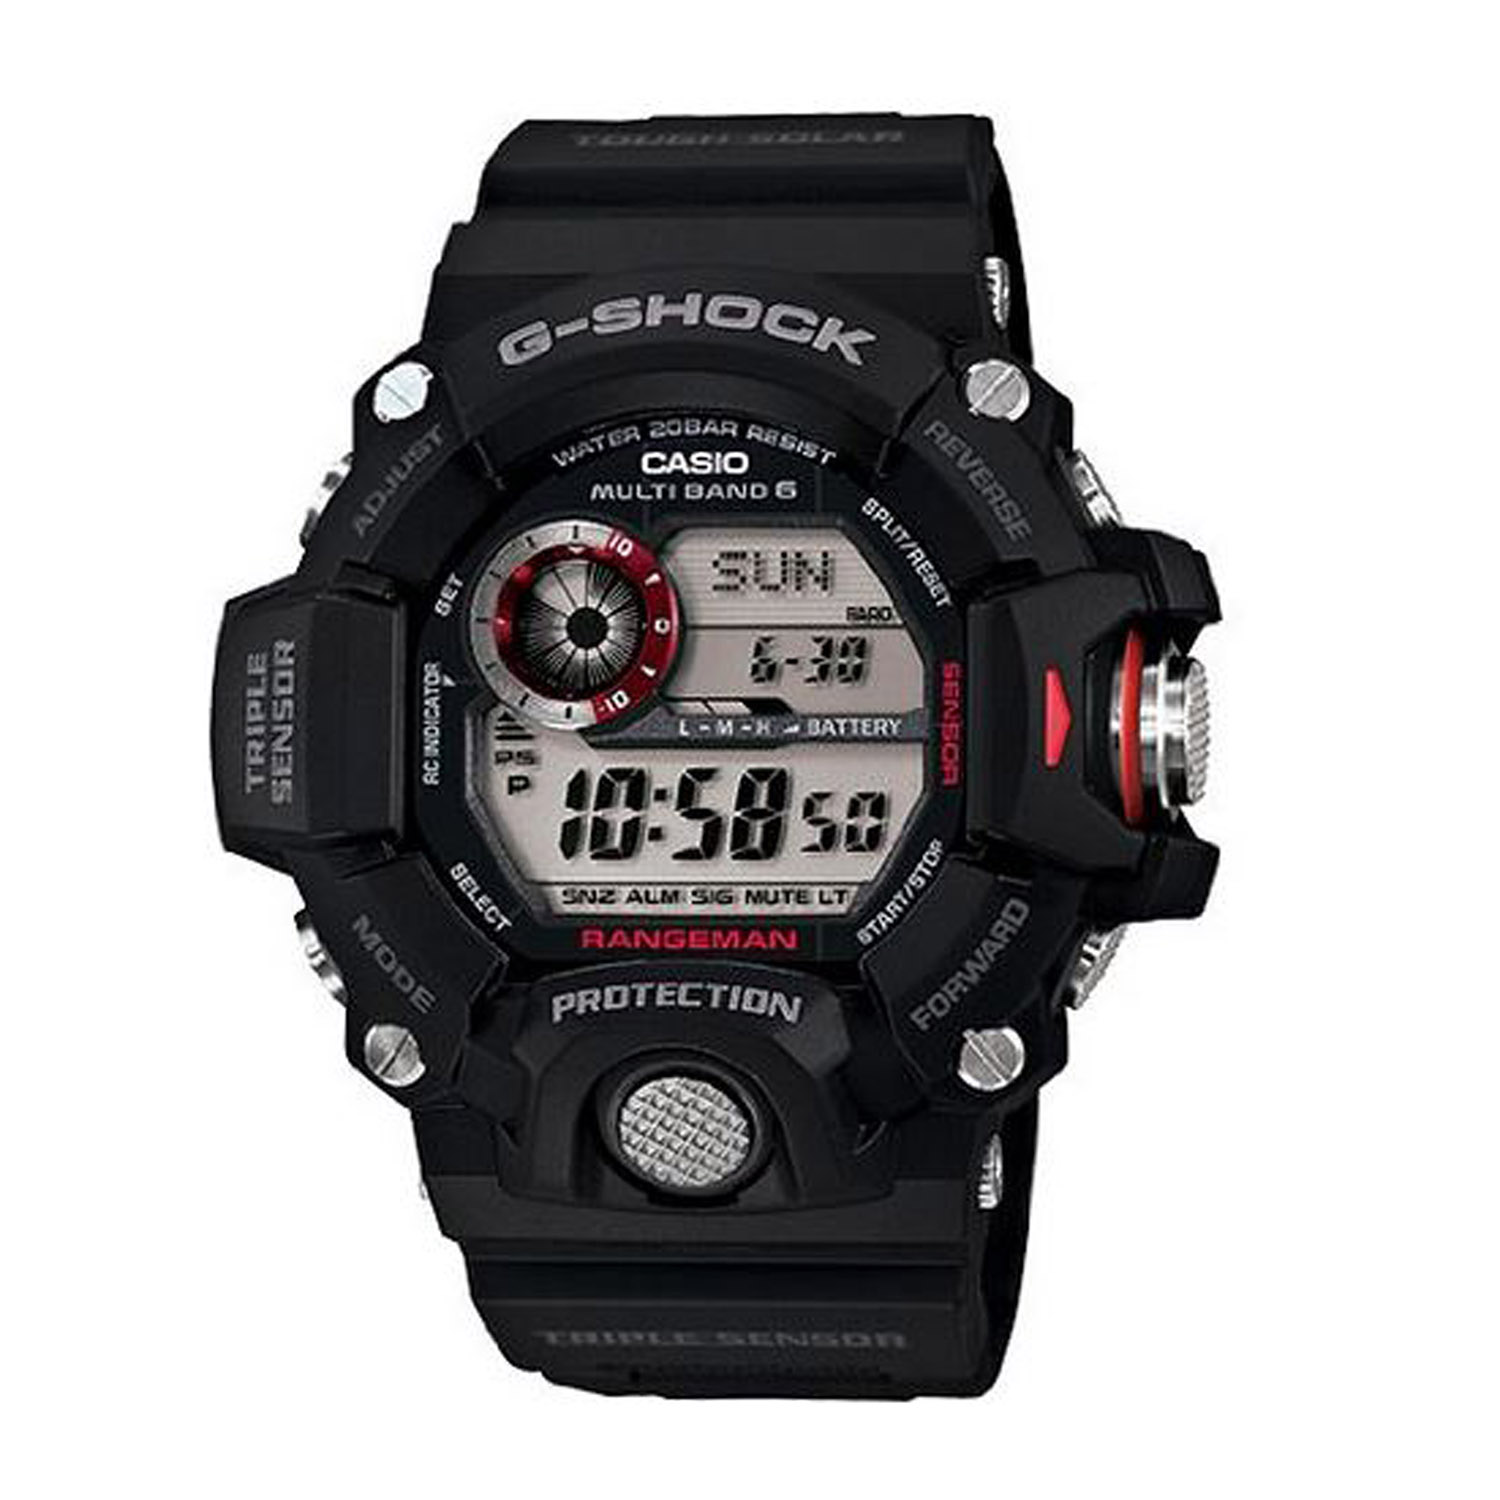 Casio G Shock Rangeman Tactical Watch